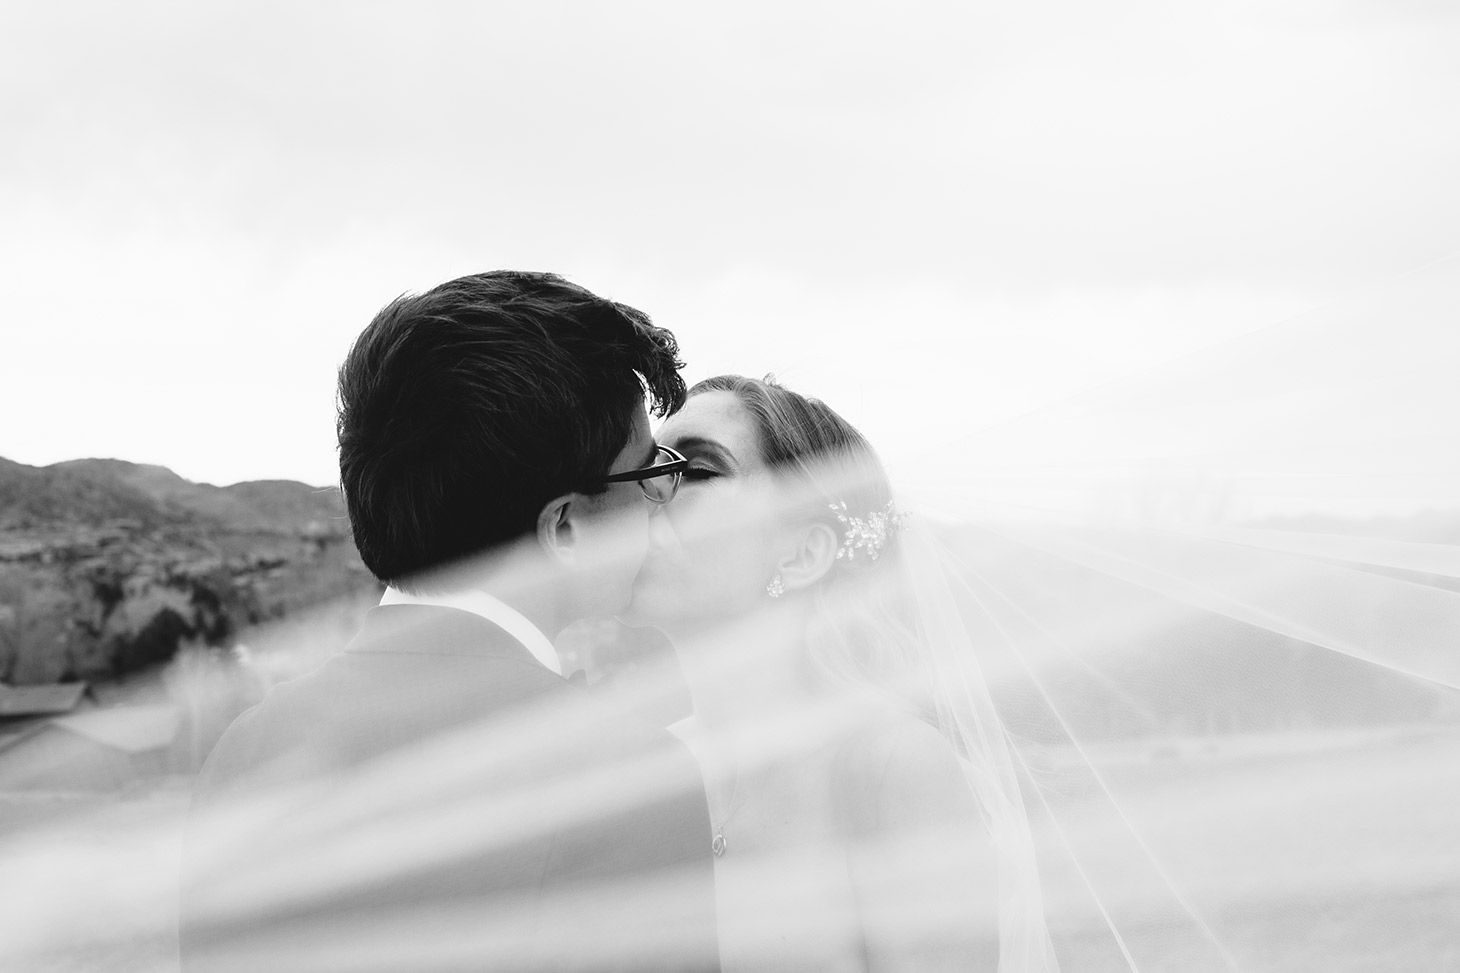 Megan-Newton-Photography-Best-Wedding-Photos-2015-013